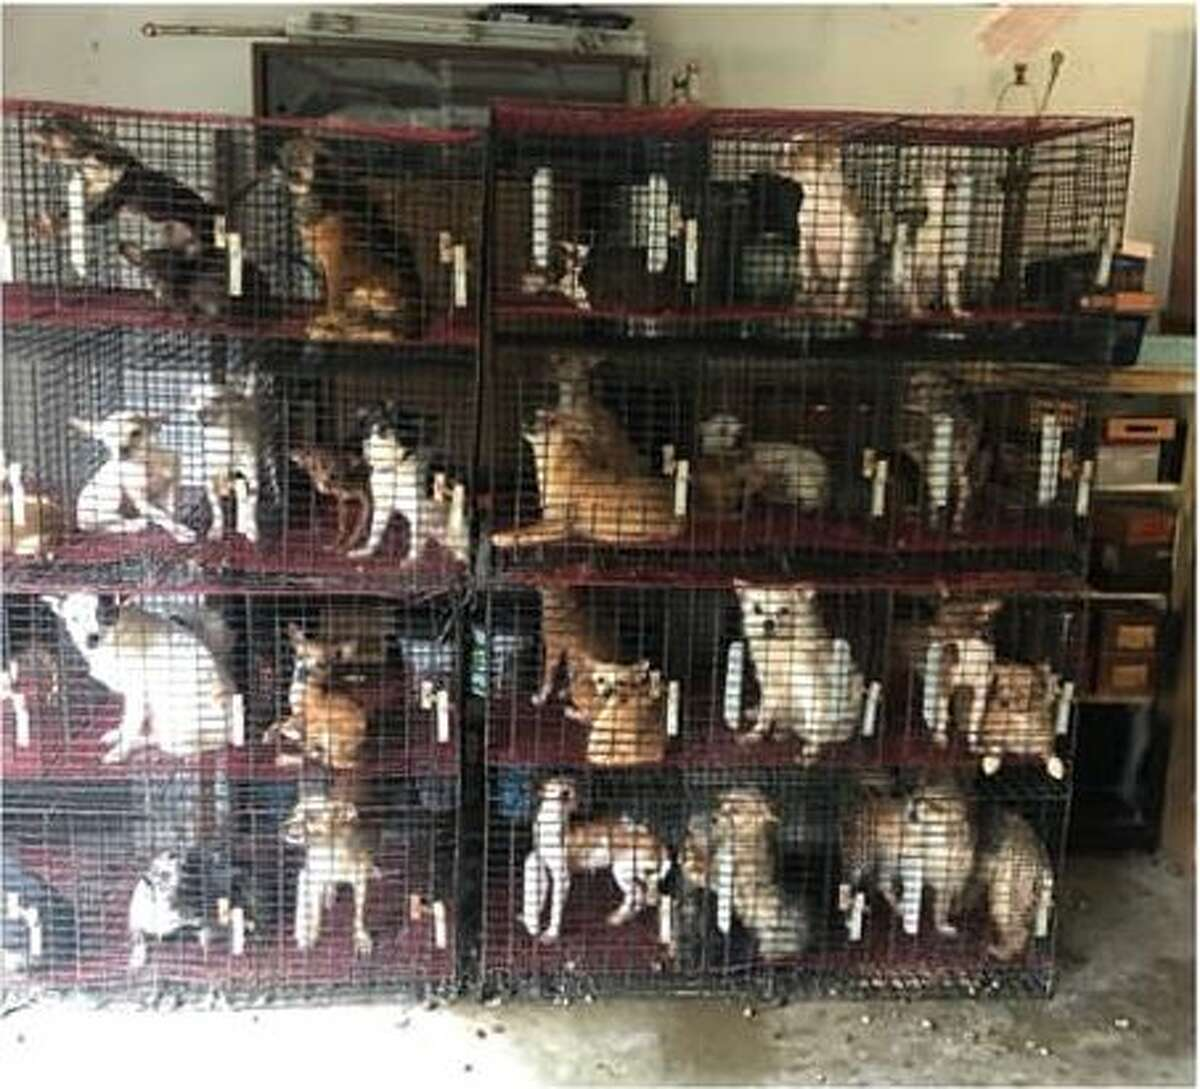 Officials rescued 76 dogs, 46 of which were puppies, from a property in Needville Thursday.